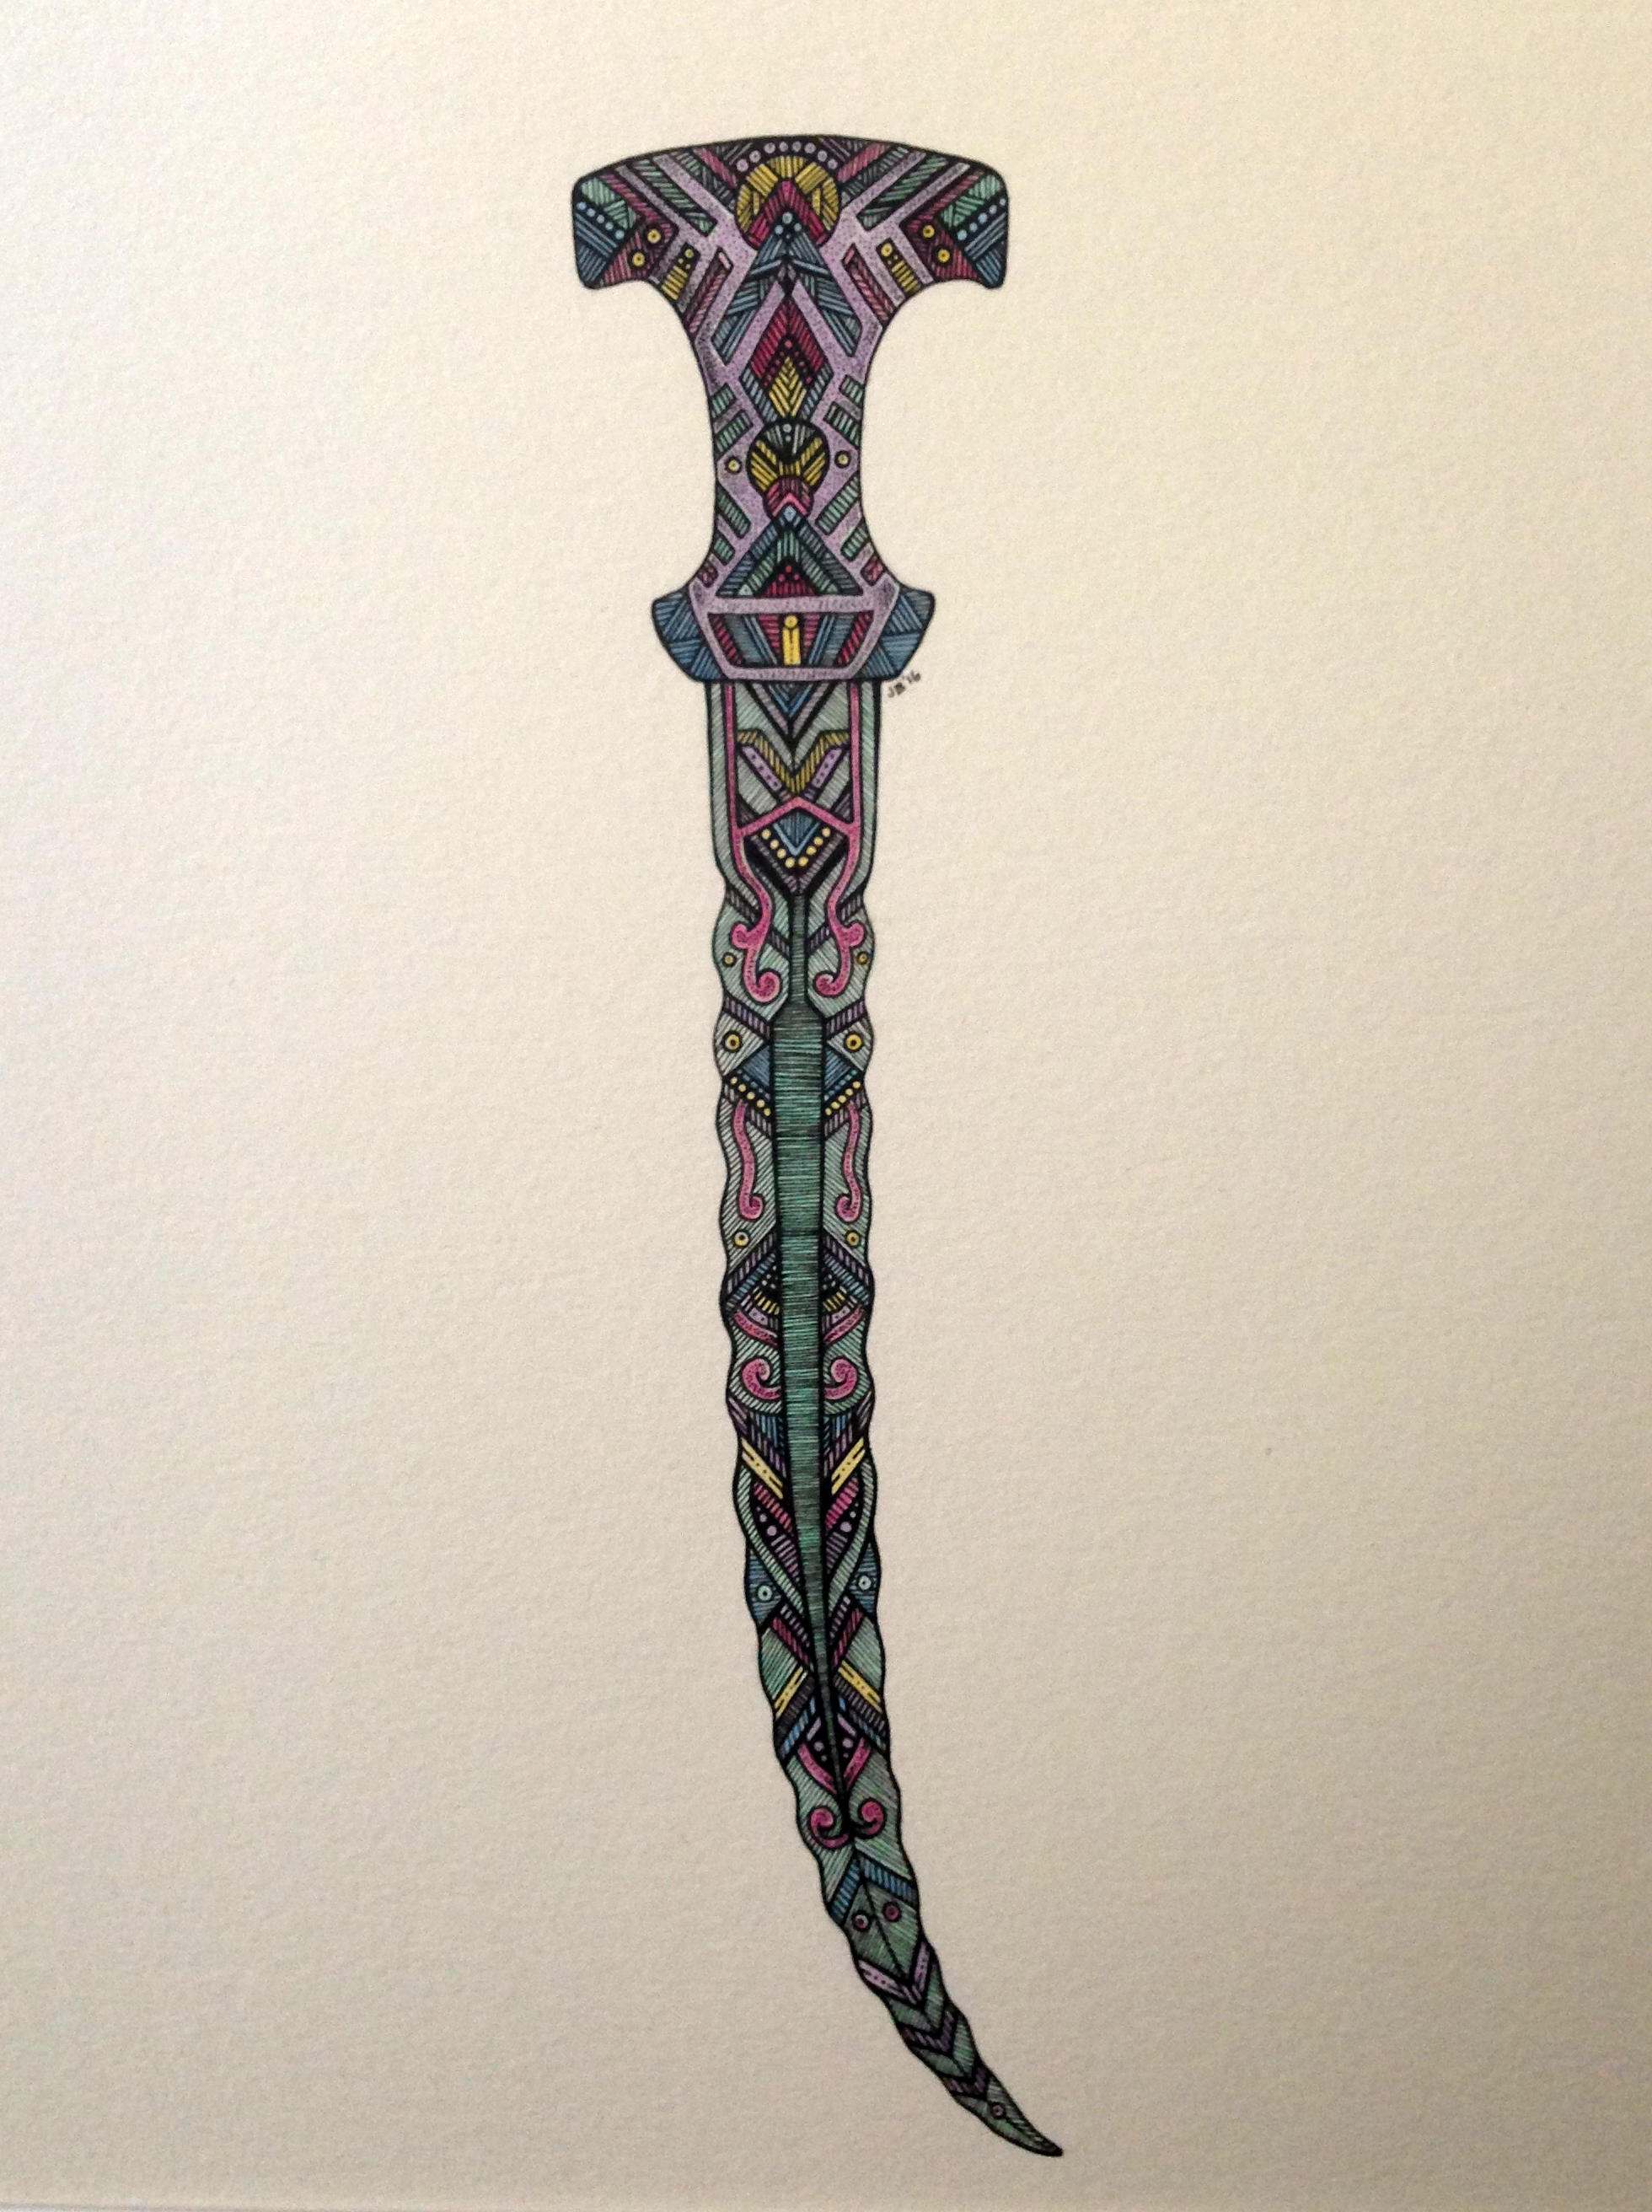 Justine Briggs – Ritual Knife II – Ink & Watercolor on Paper – 15 x 13 inches - $250